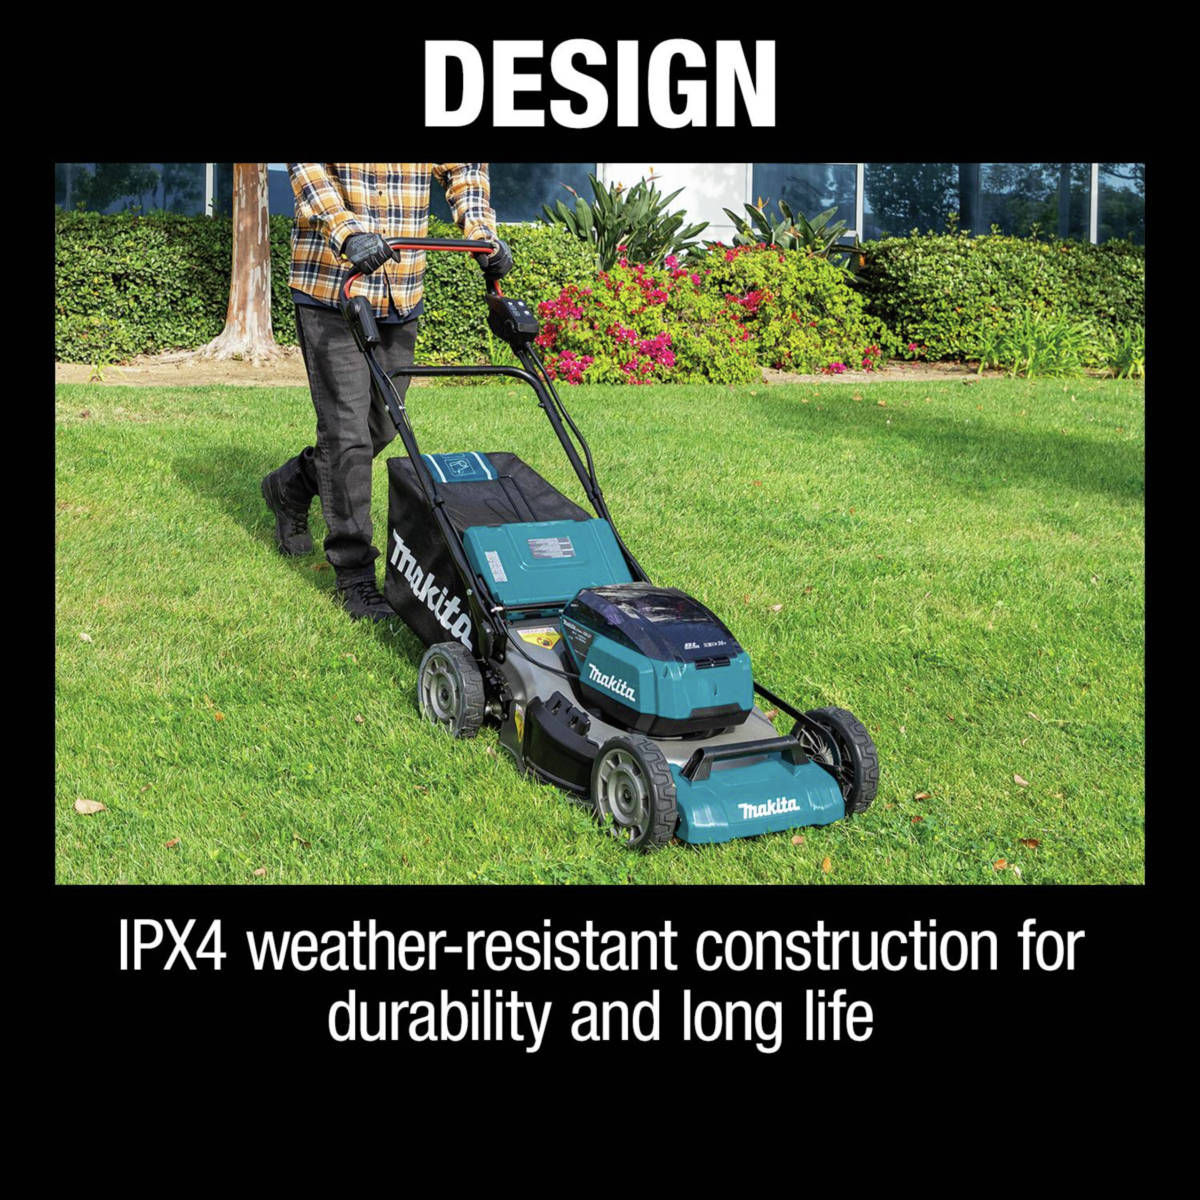 18V X2 (36V) LXT Lawn Mower is IPX4 weather-resistant